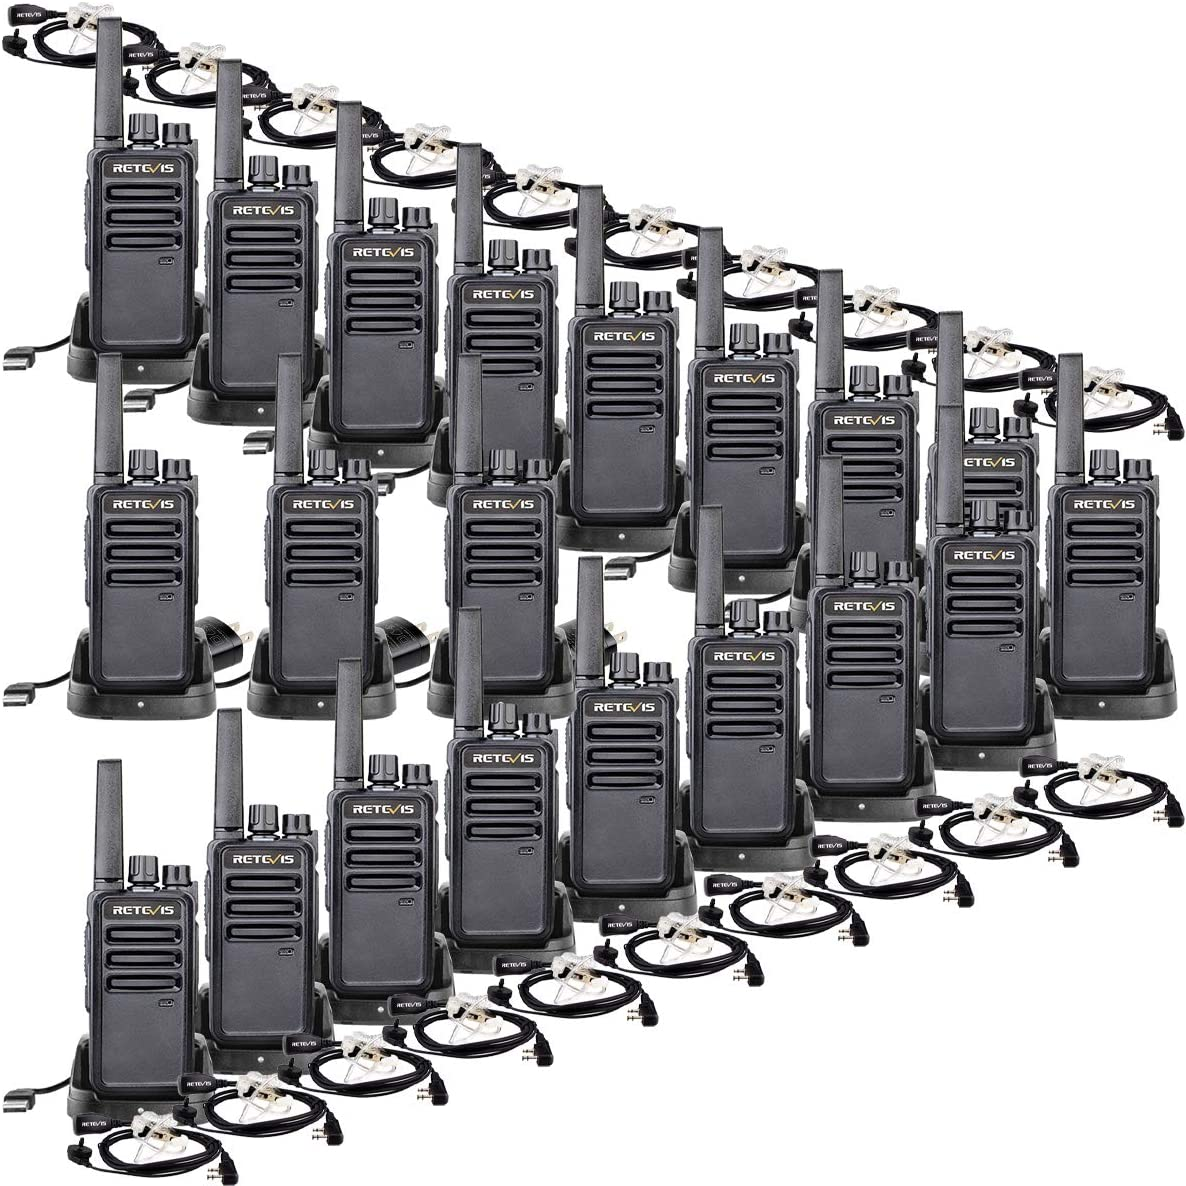 Case of 20,Retevis RT68 2 Way Radios Long Range 16 CH VOX Rechargeable Business Walkie Talkie